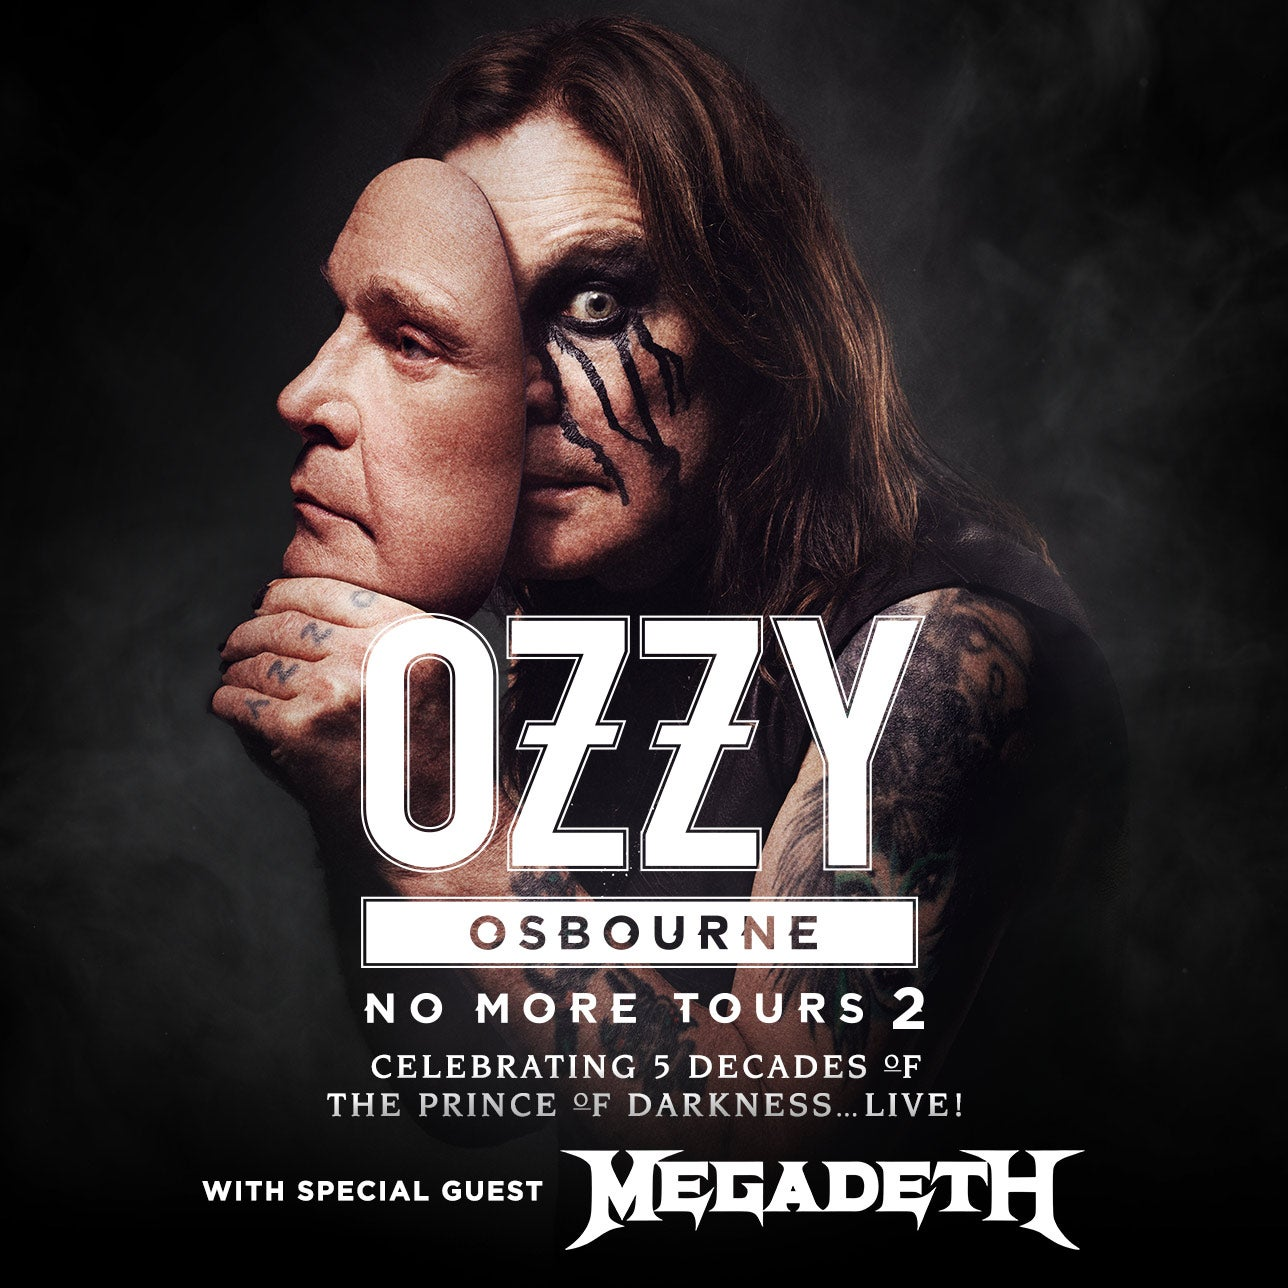 Rescheduled - Ozzy Osbourne